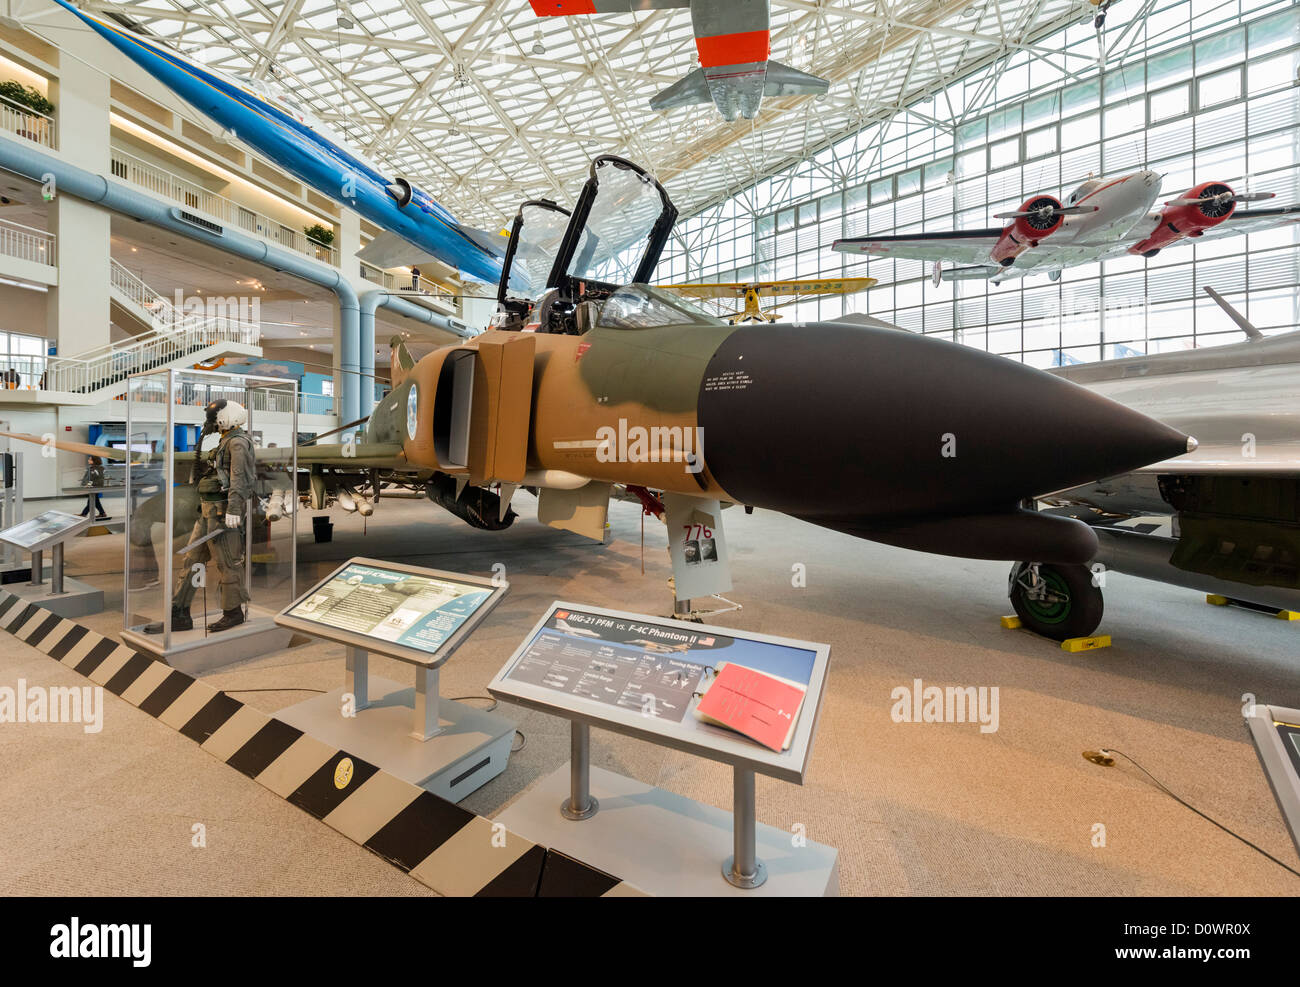 A 1965 McDonnell F-4C Phantom II fighter aircraft, The Great Gallery, Museum of Flight, Seattle, Washington, USA - Stock Image